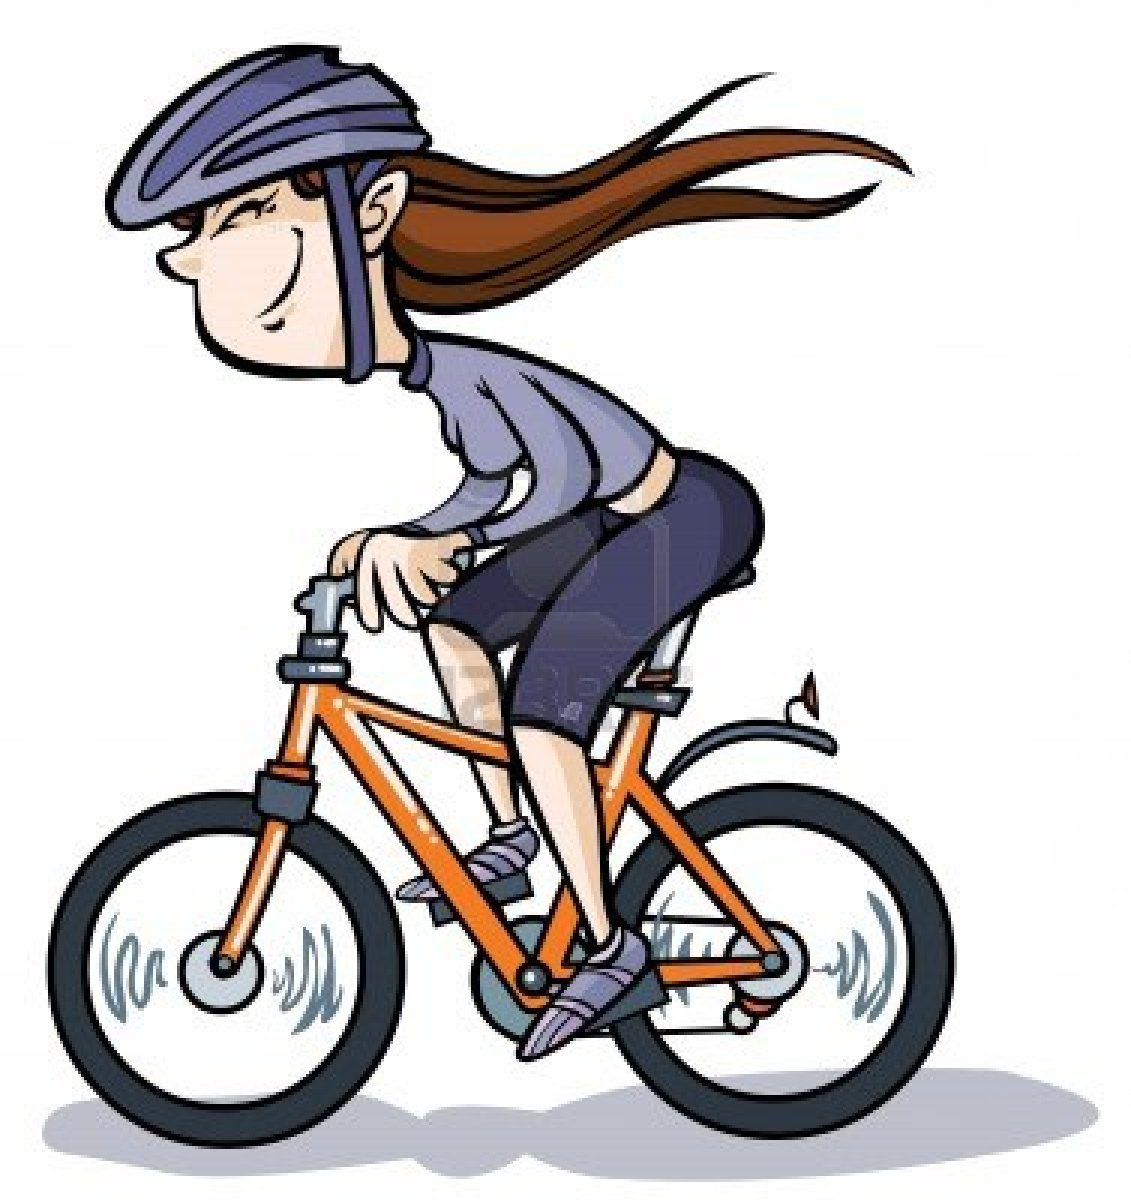 Pushbike clipart circus Animated bicycle Kid bike riding